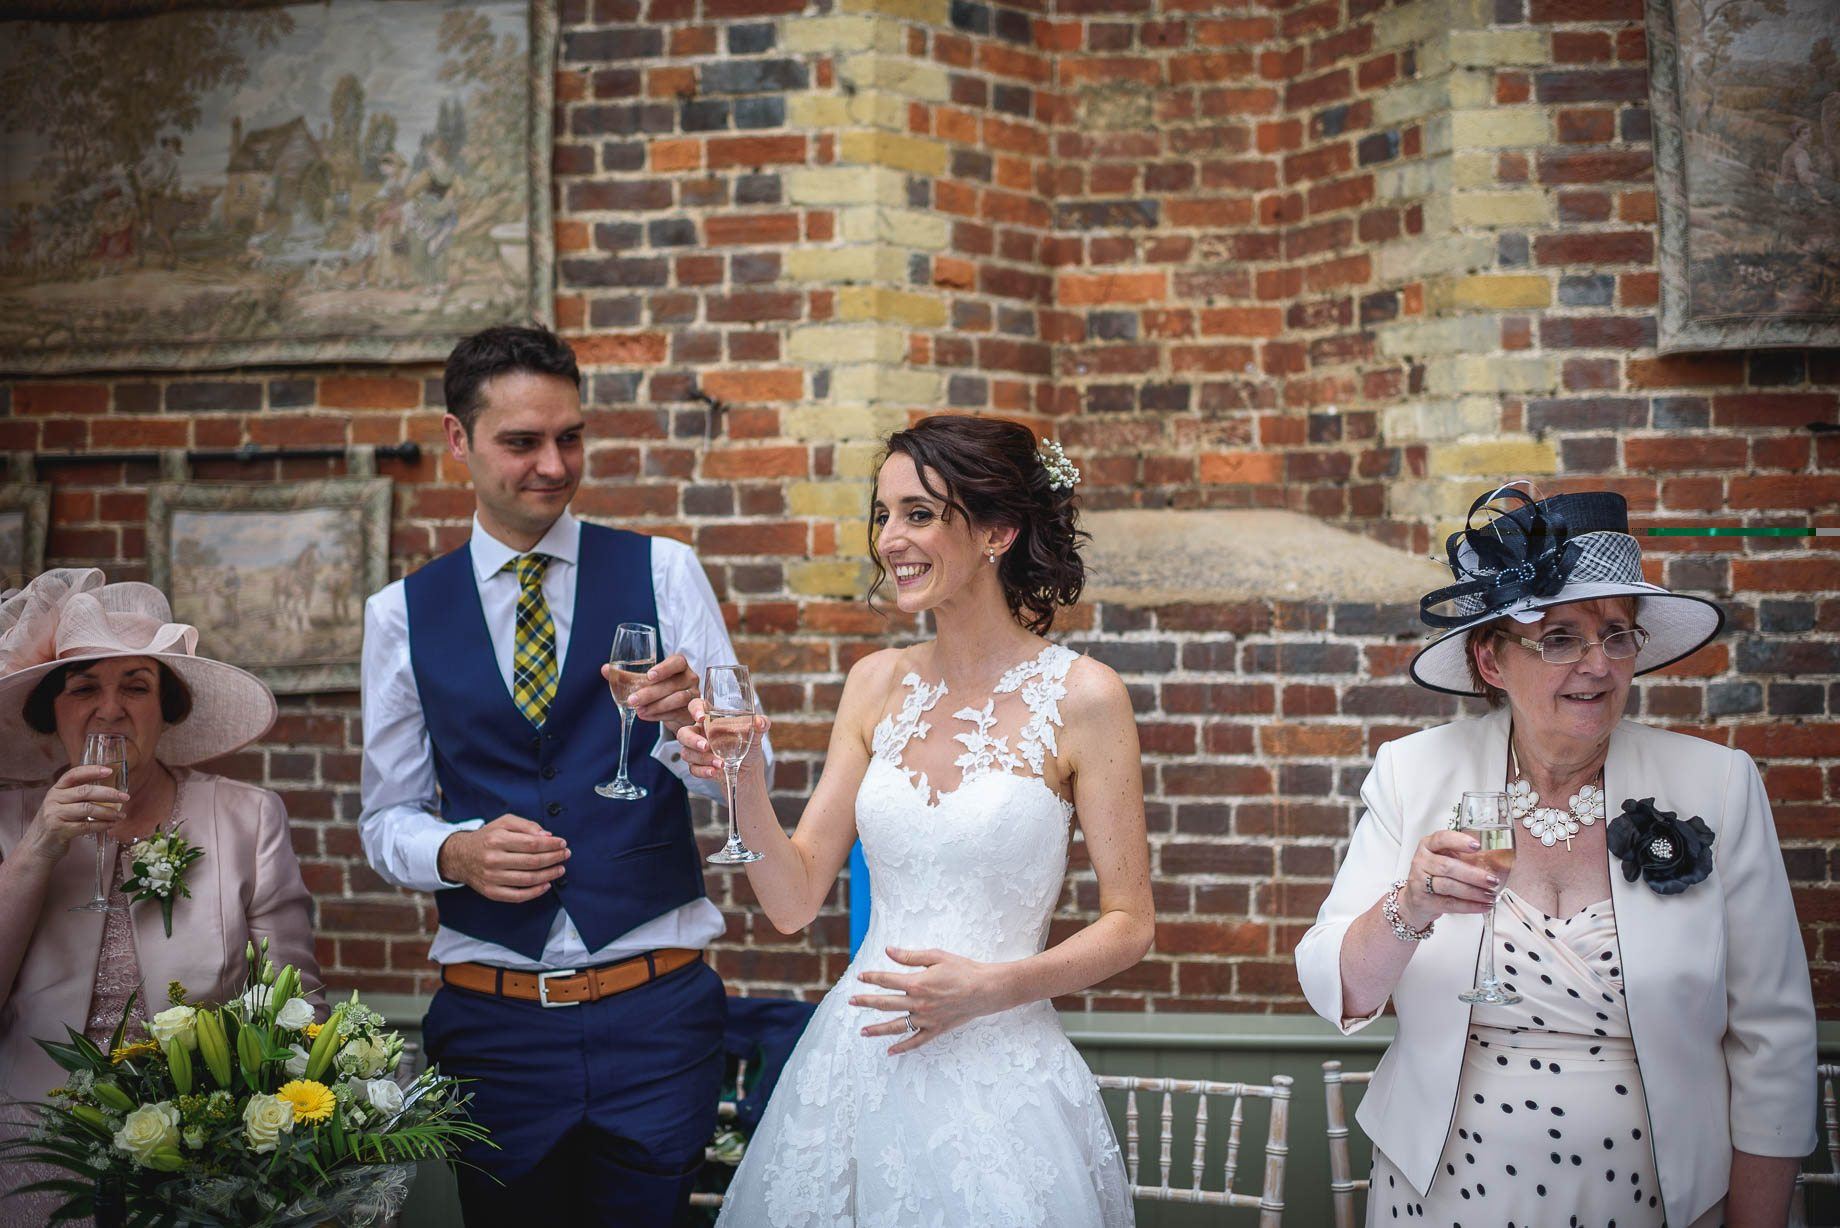 Hertfordshire wedding photography - Sarah and Stephen by Guy Collier Photography (135 of 161)